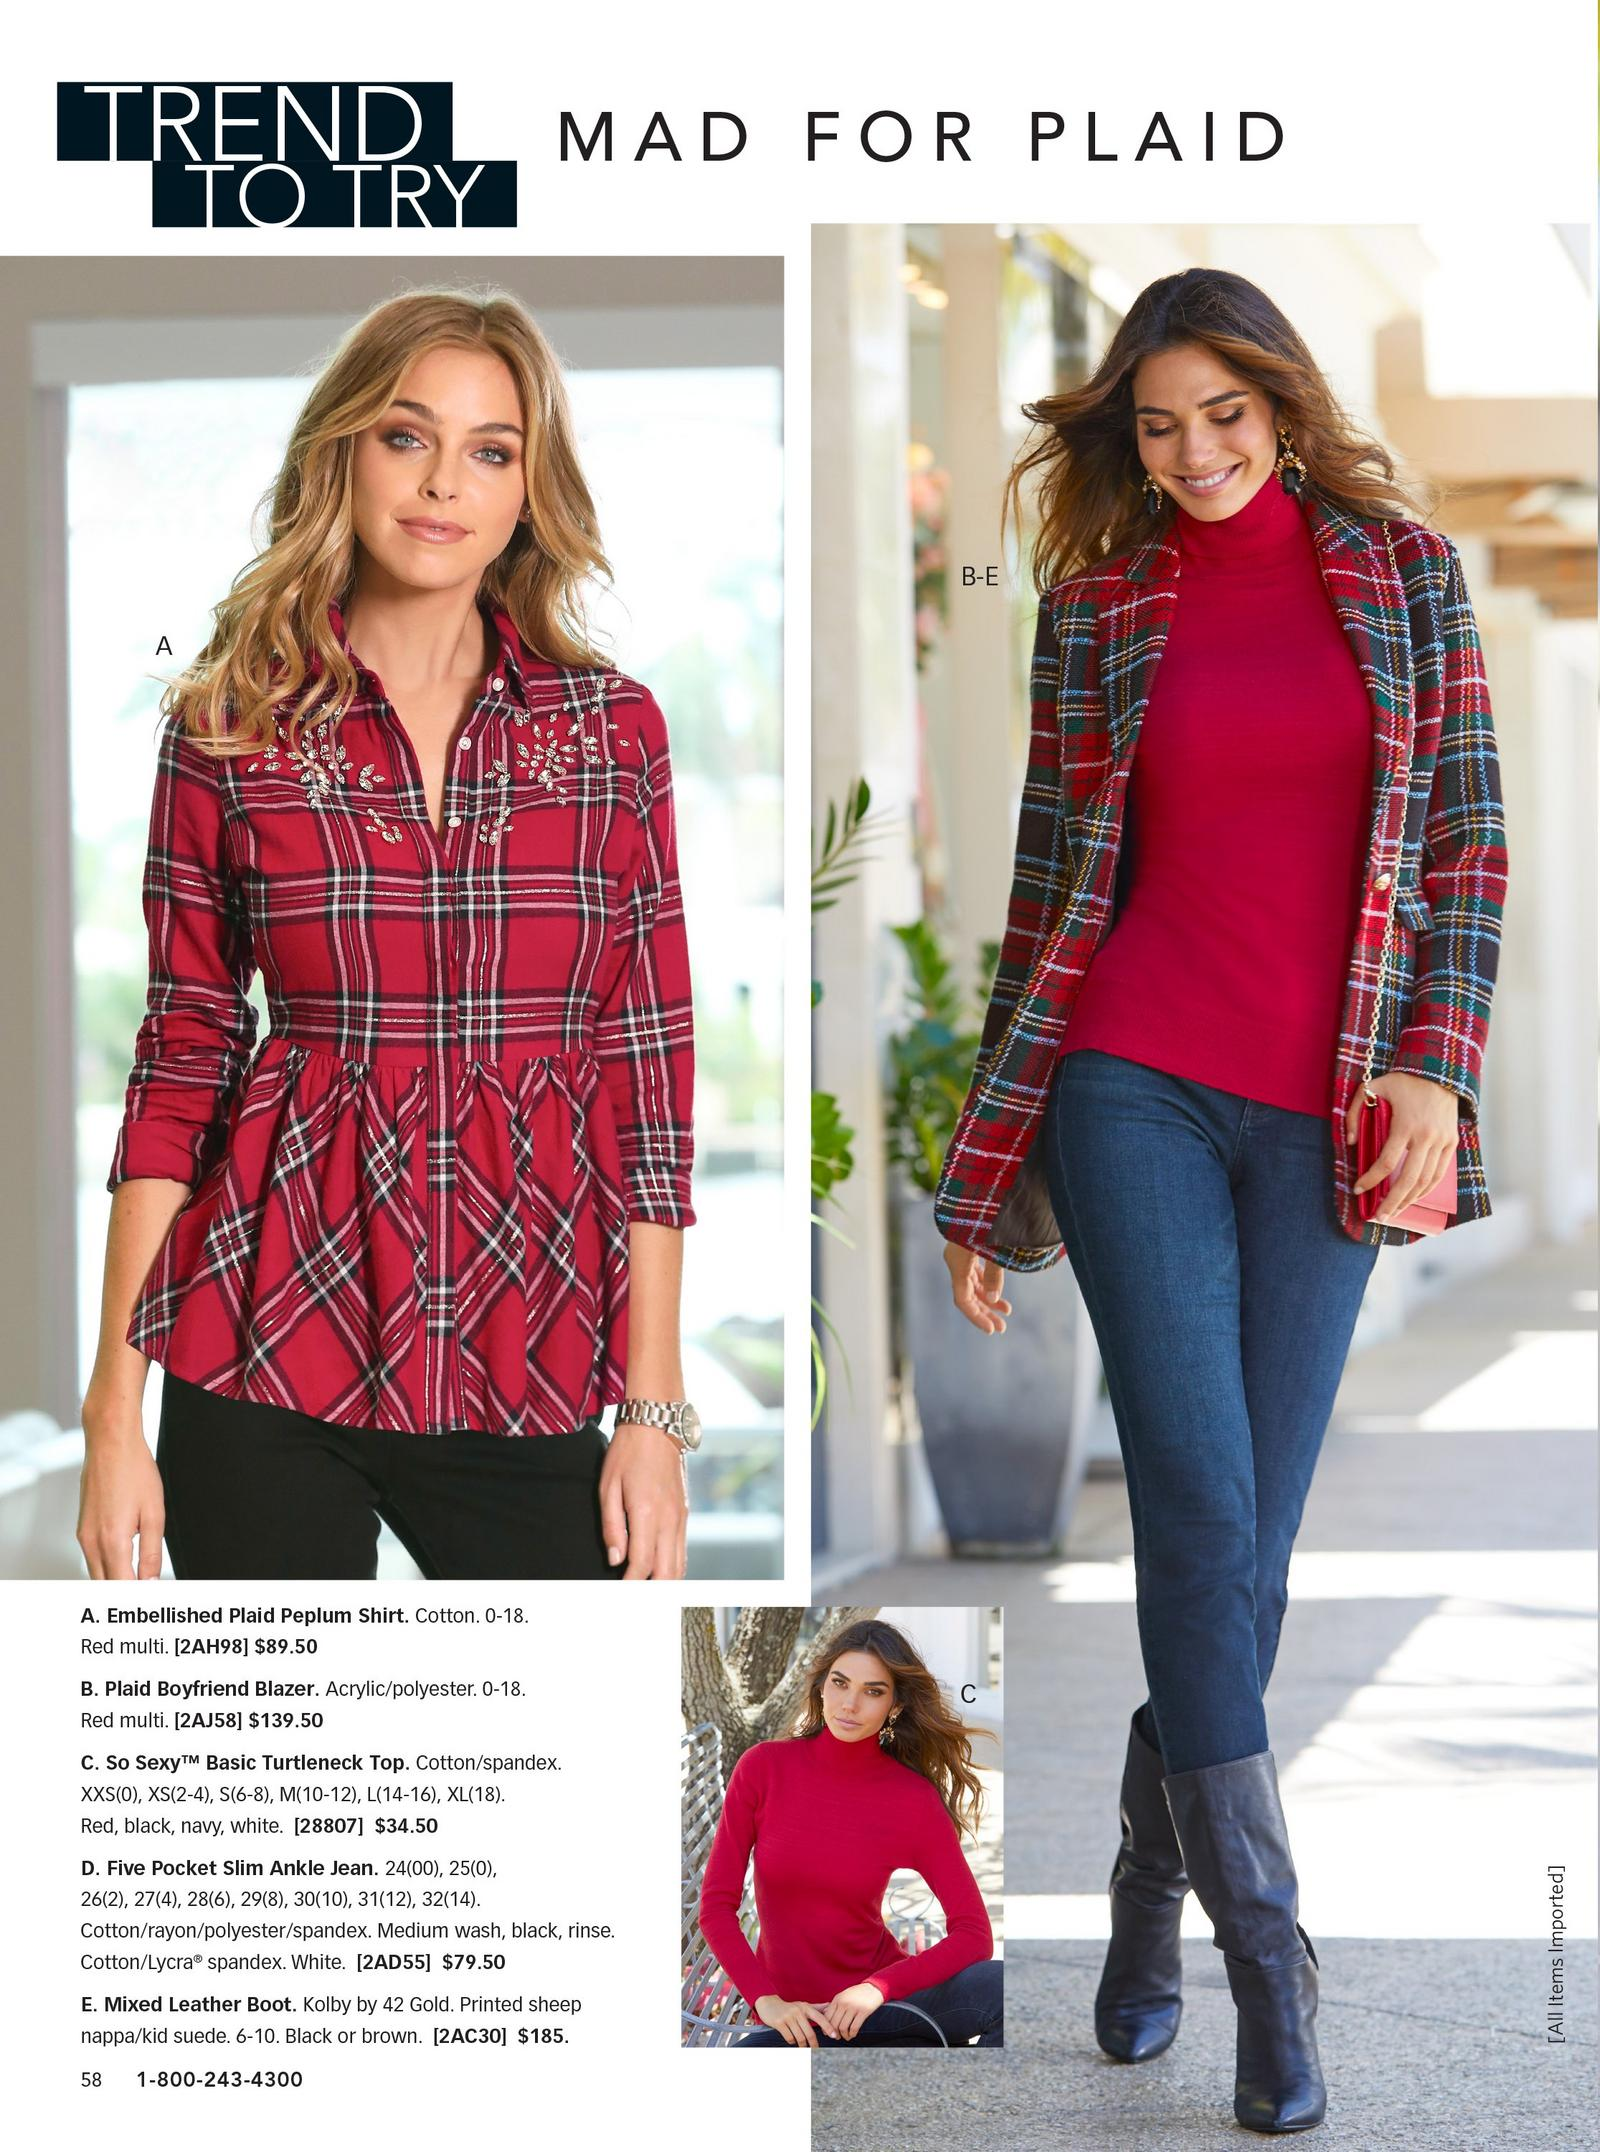 left model: embellished plaid peplum shirt. right model: plaid boyfriend blazer over red turtleneck and jeans with black boots.